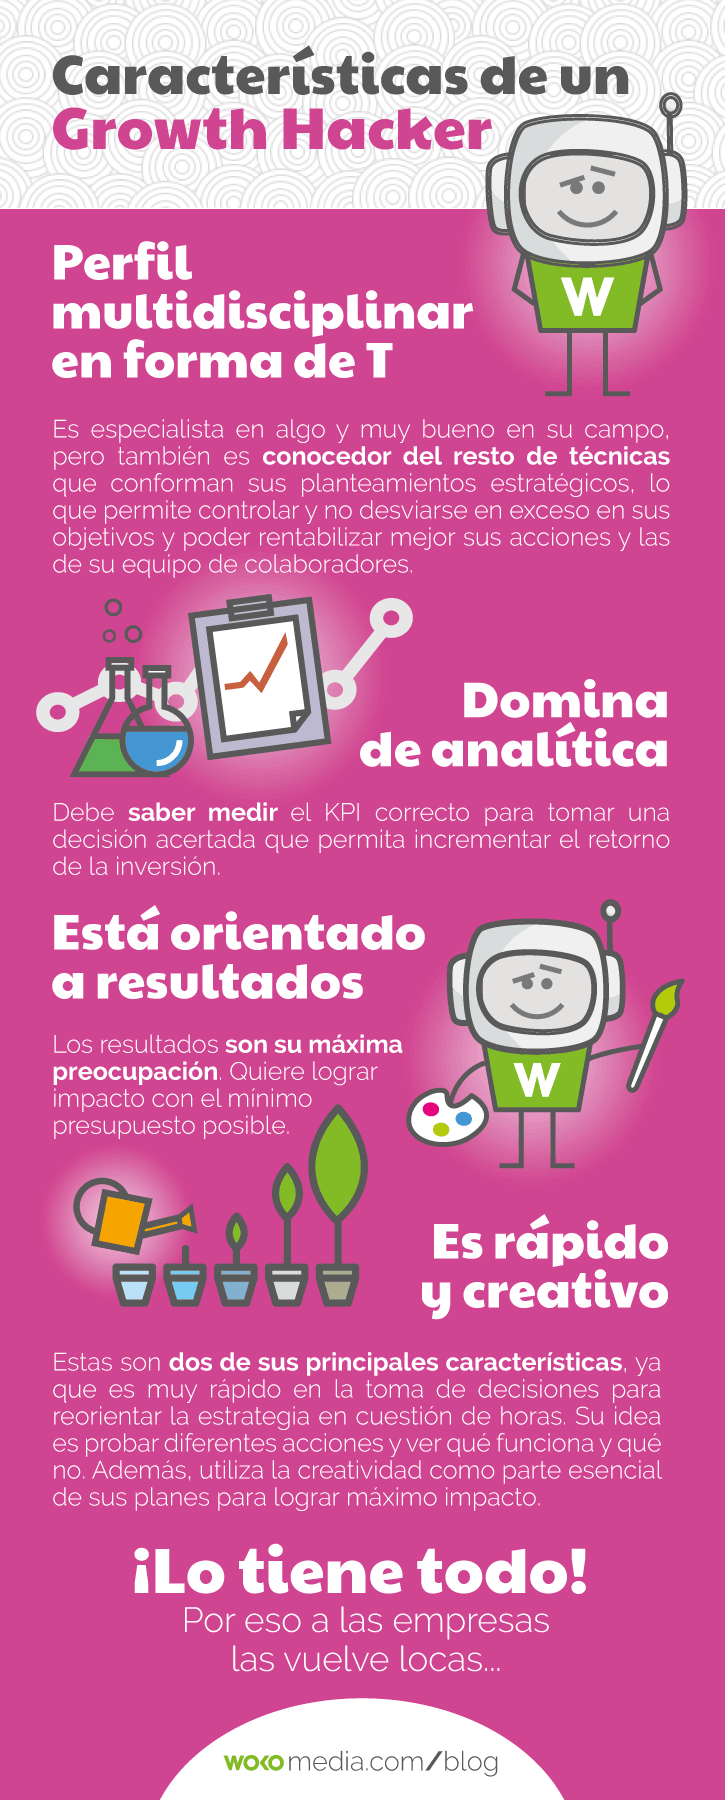 Características de un Growth Hacker